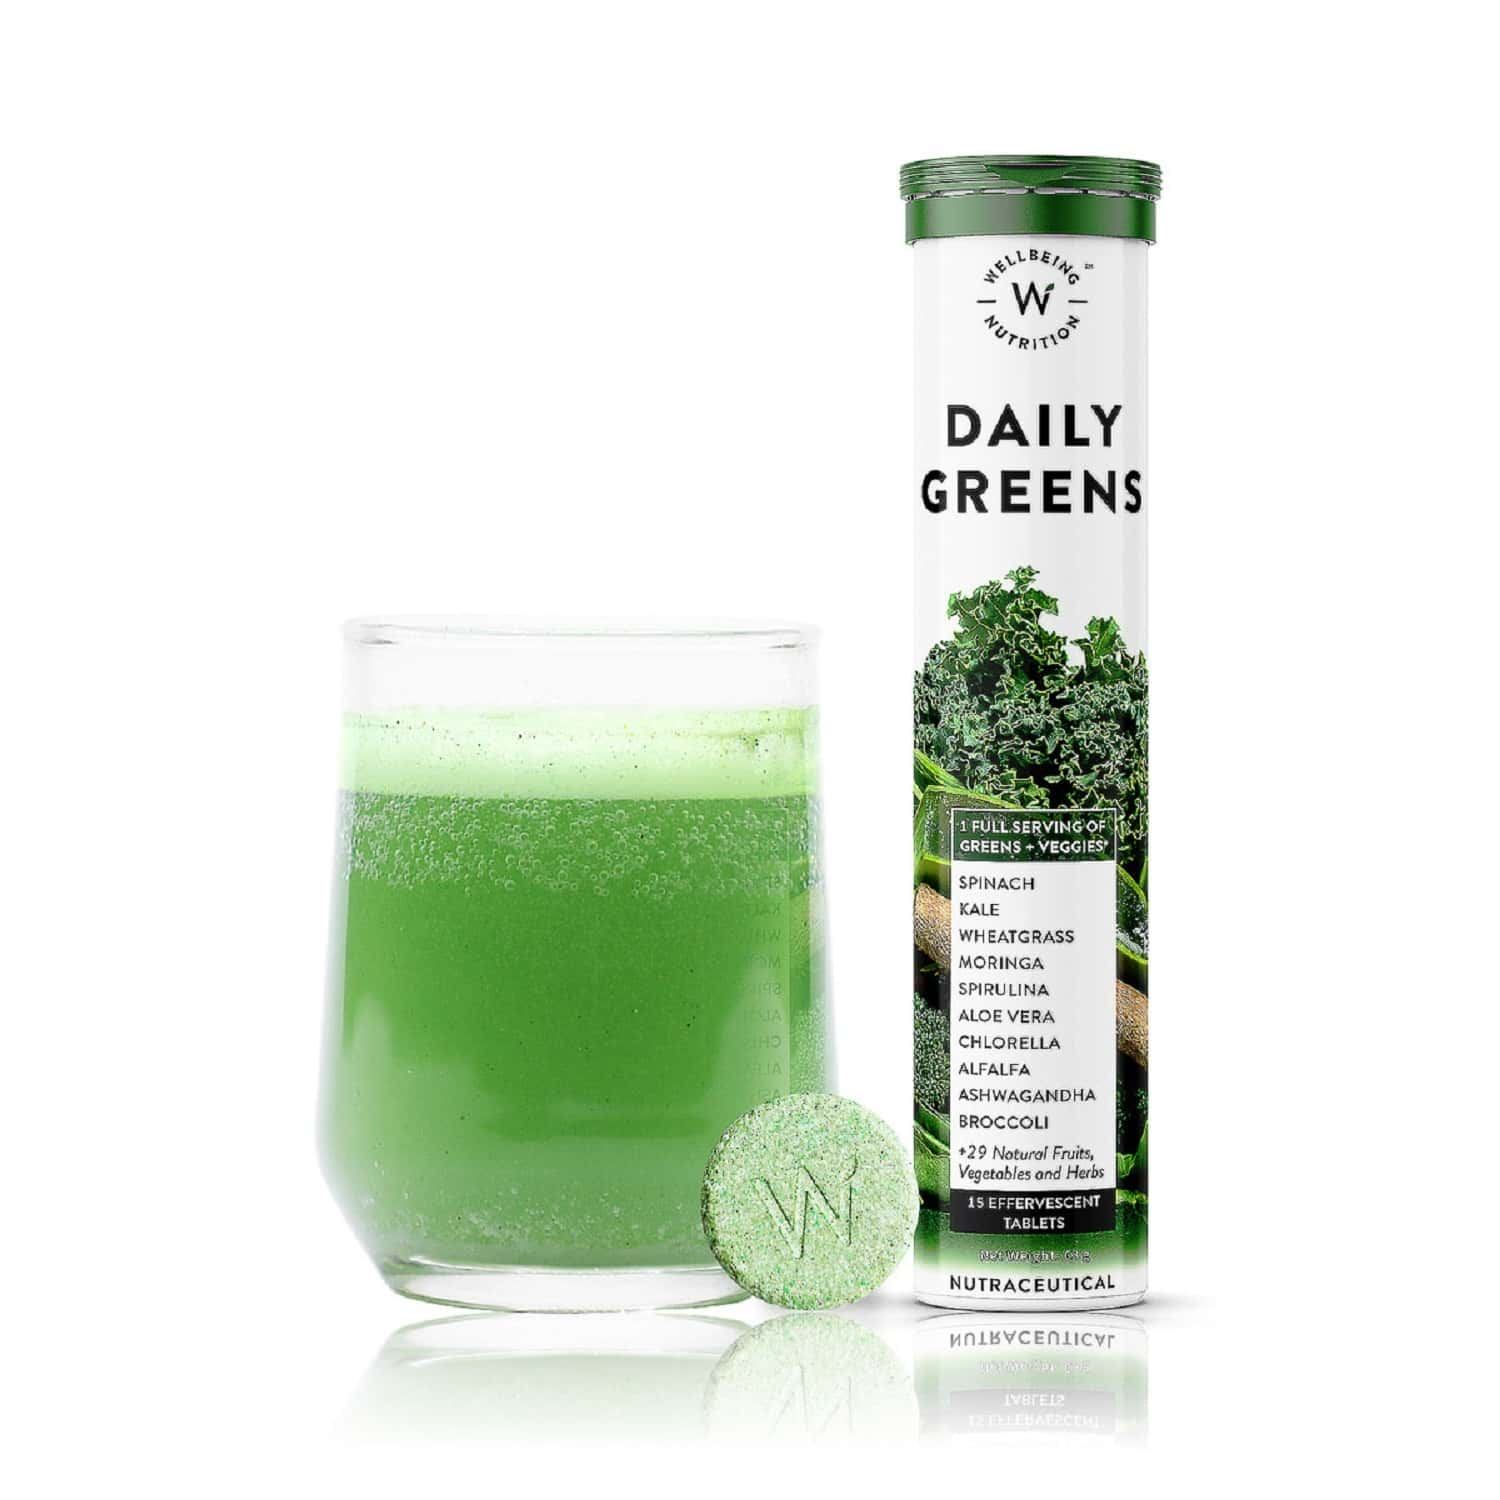 Wellbeing Nutrition Daily Greens Organic Wholefood Multivitamin For Immunity & Detox - 15 Effervescent Tablets